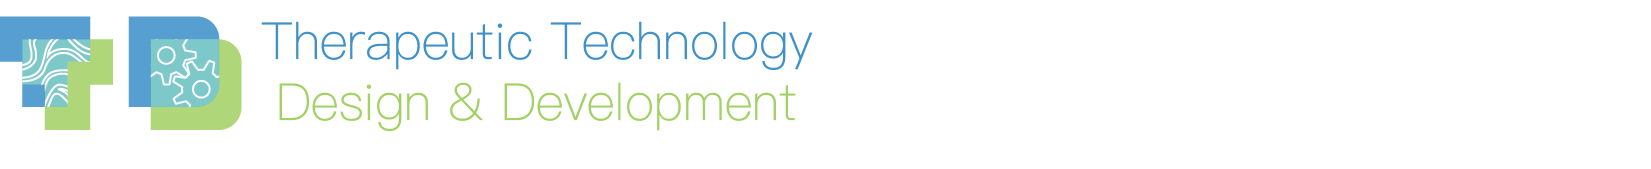 Therapeutic Technology Device & Development Lab logo